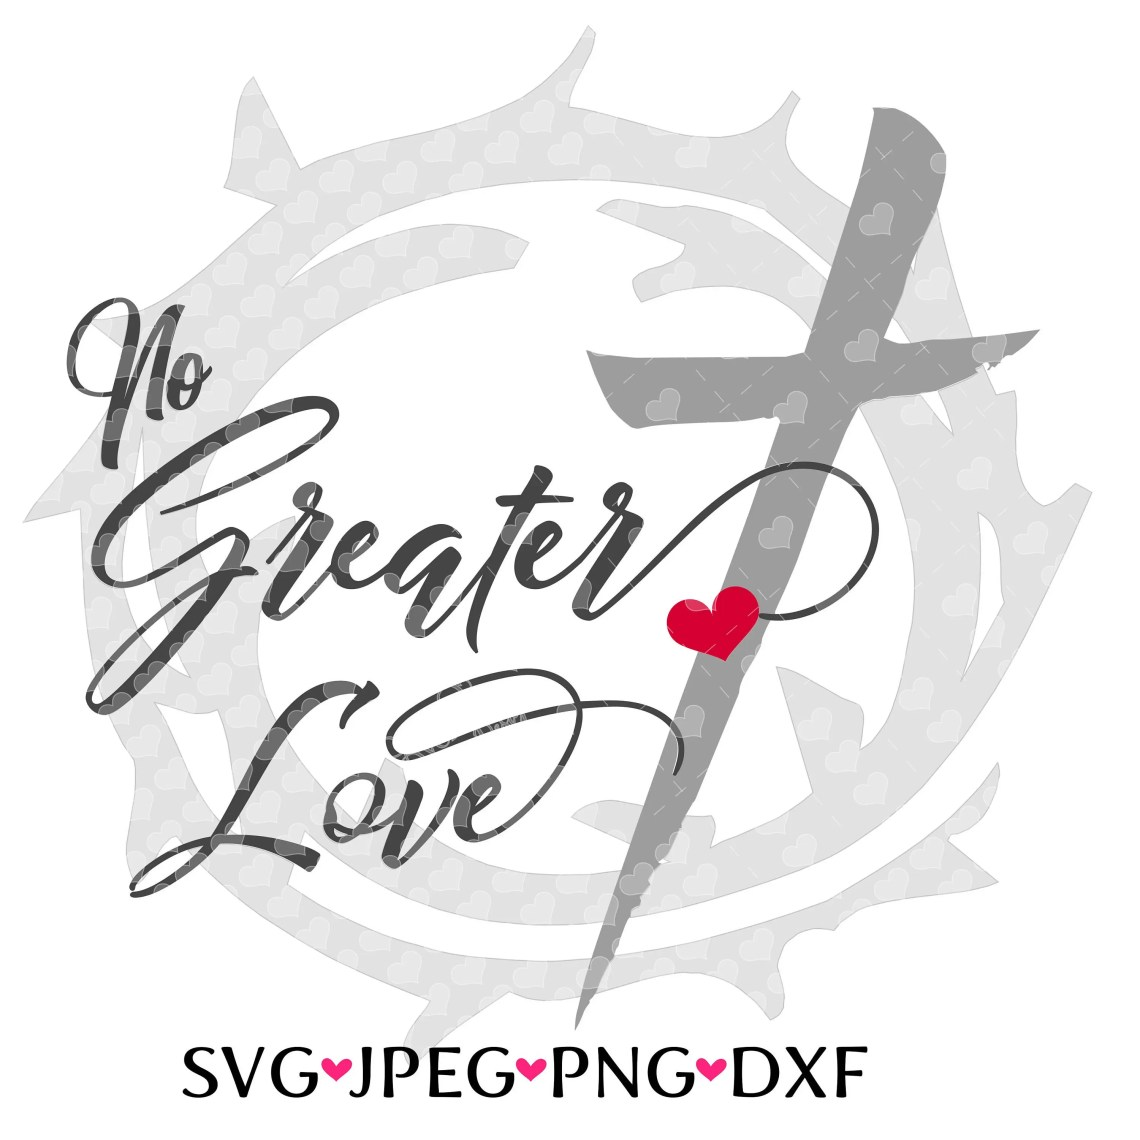 Download No Greater Love SVG cut file